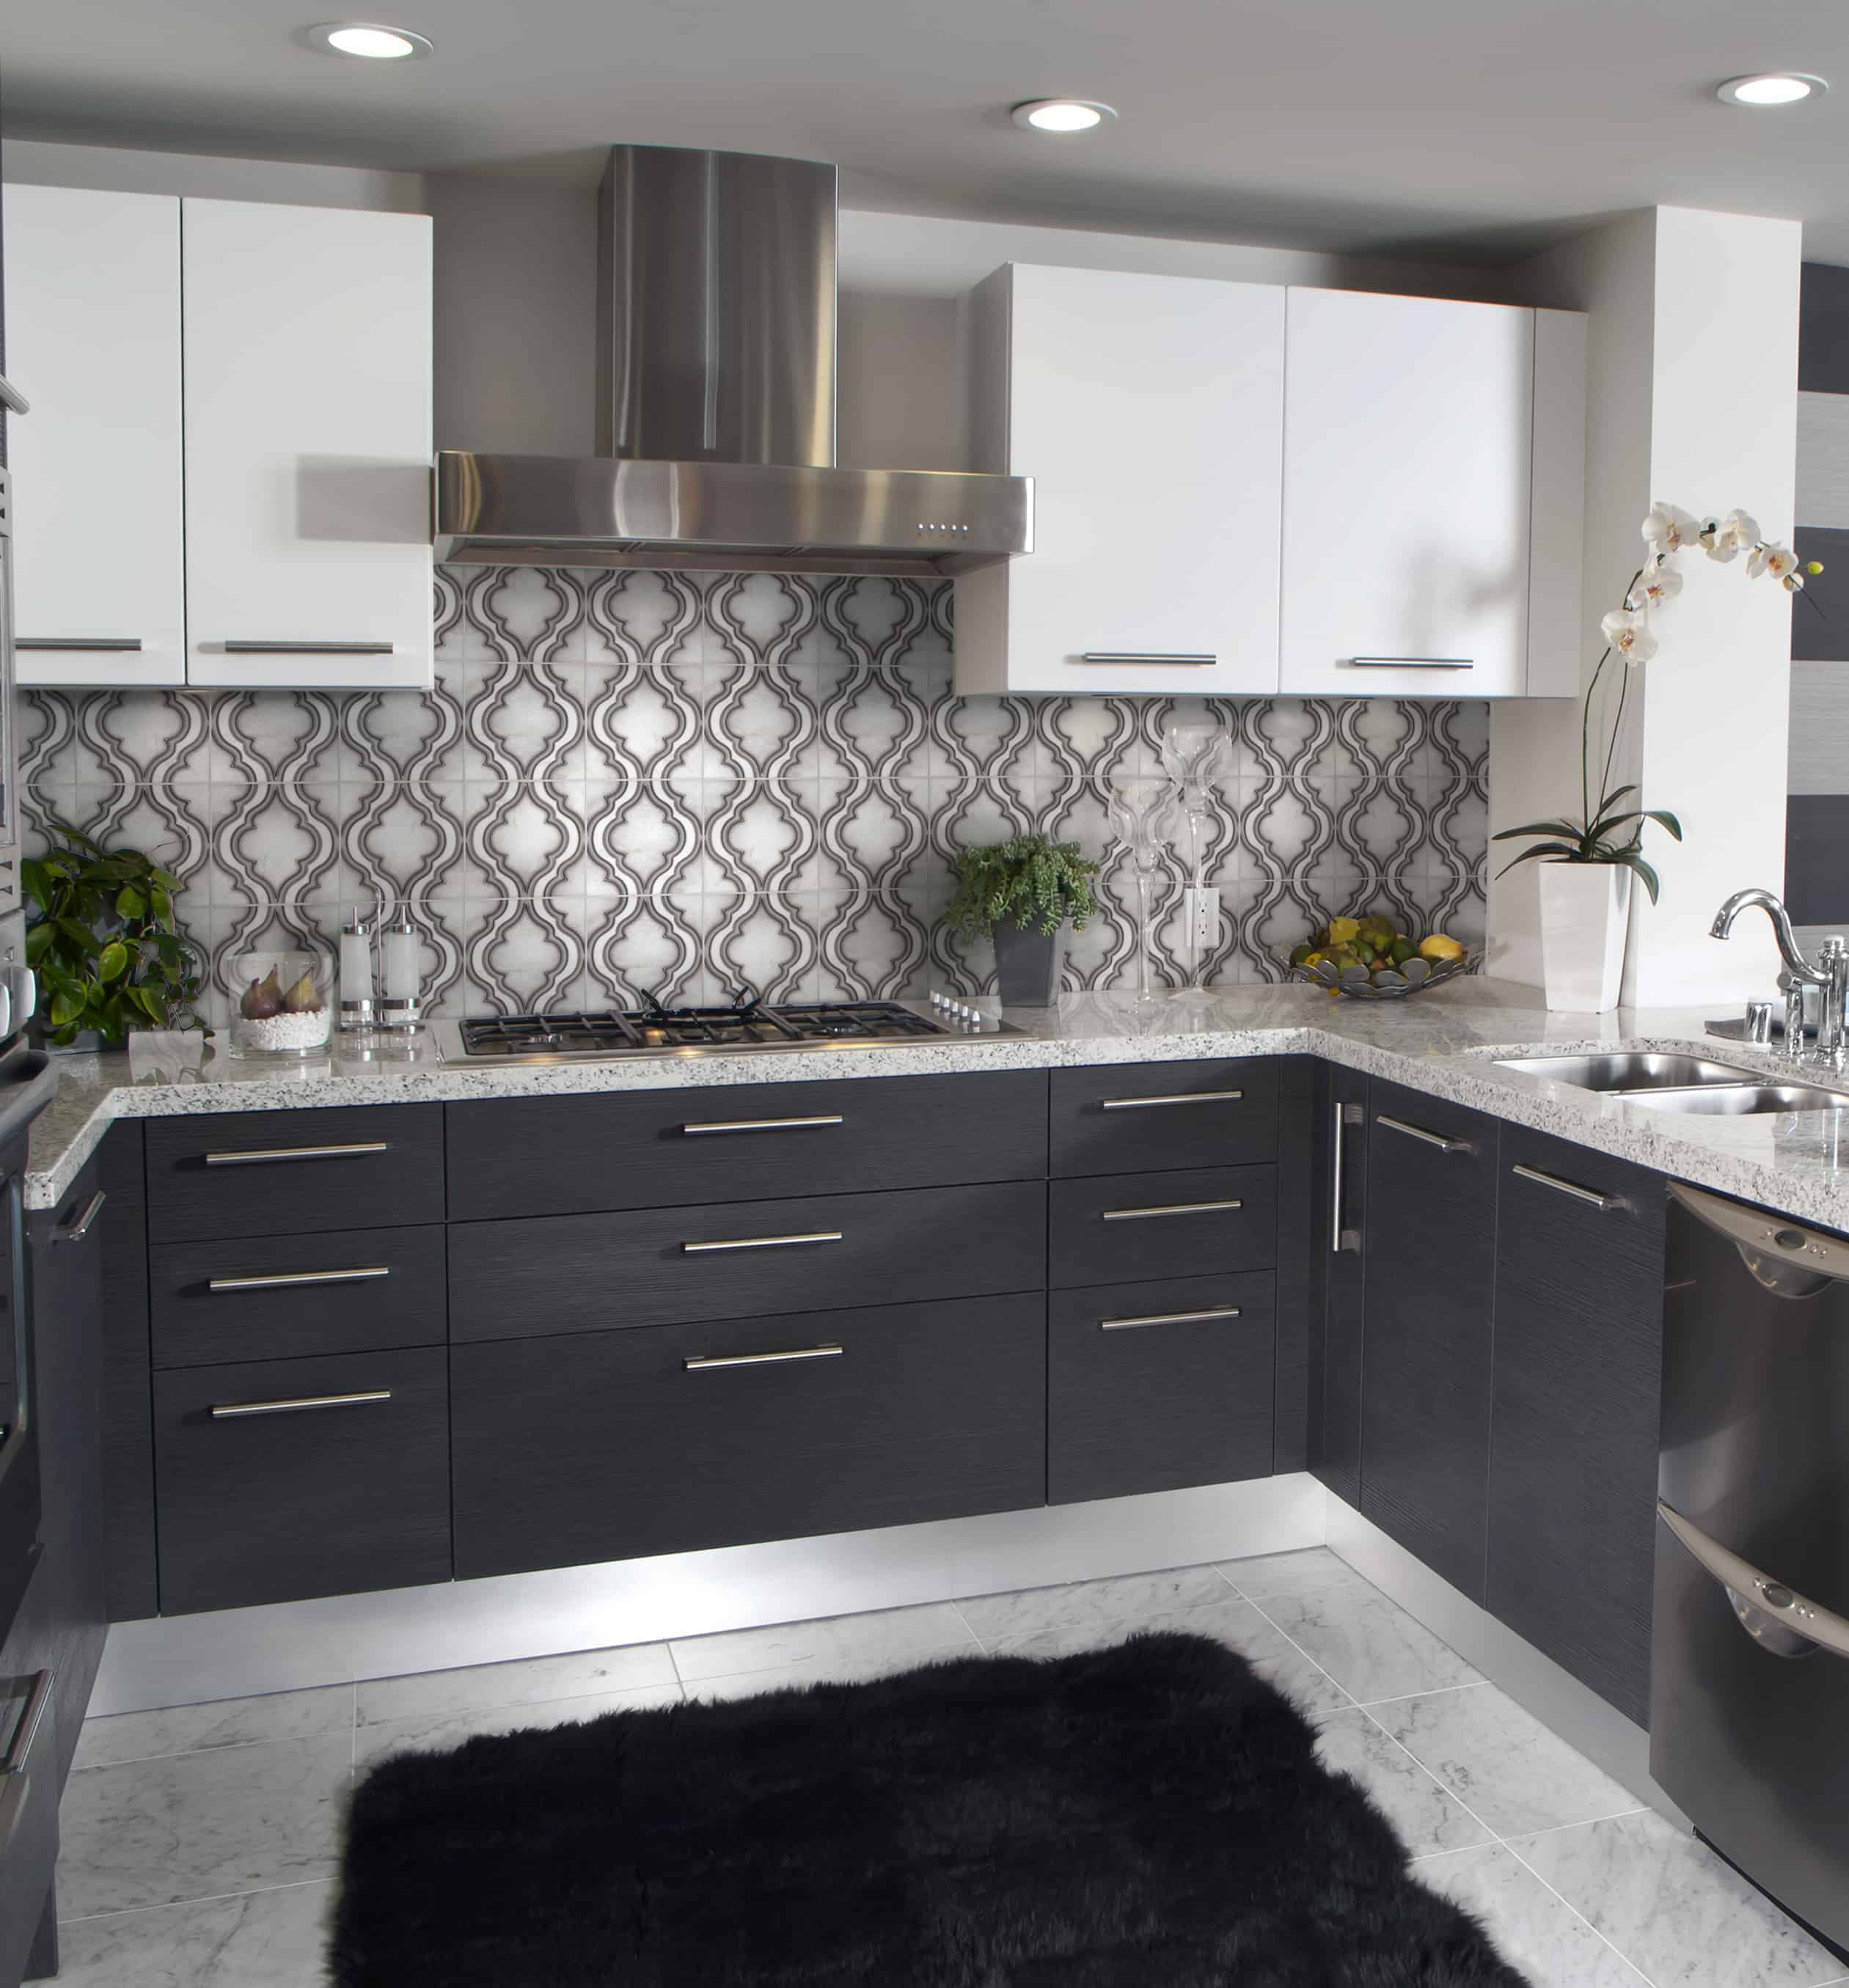 Pirouette (Silver) on Carrara Kitchen Install Silver Kitchen